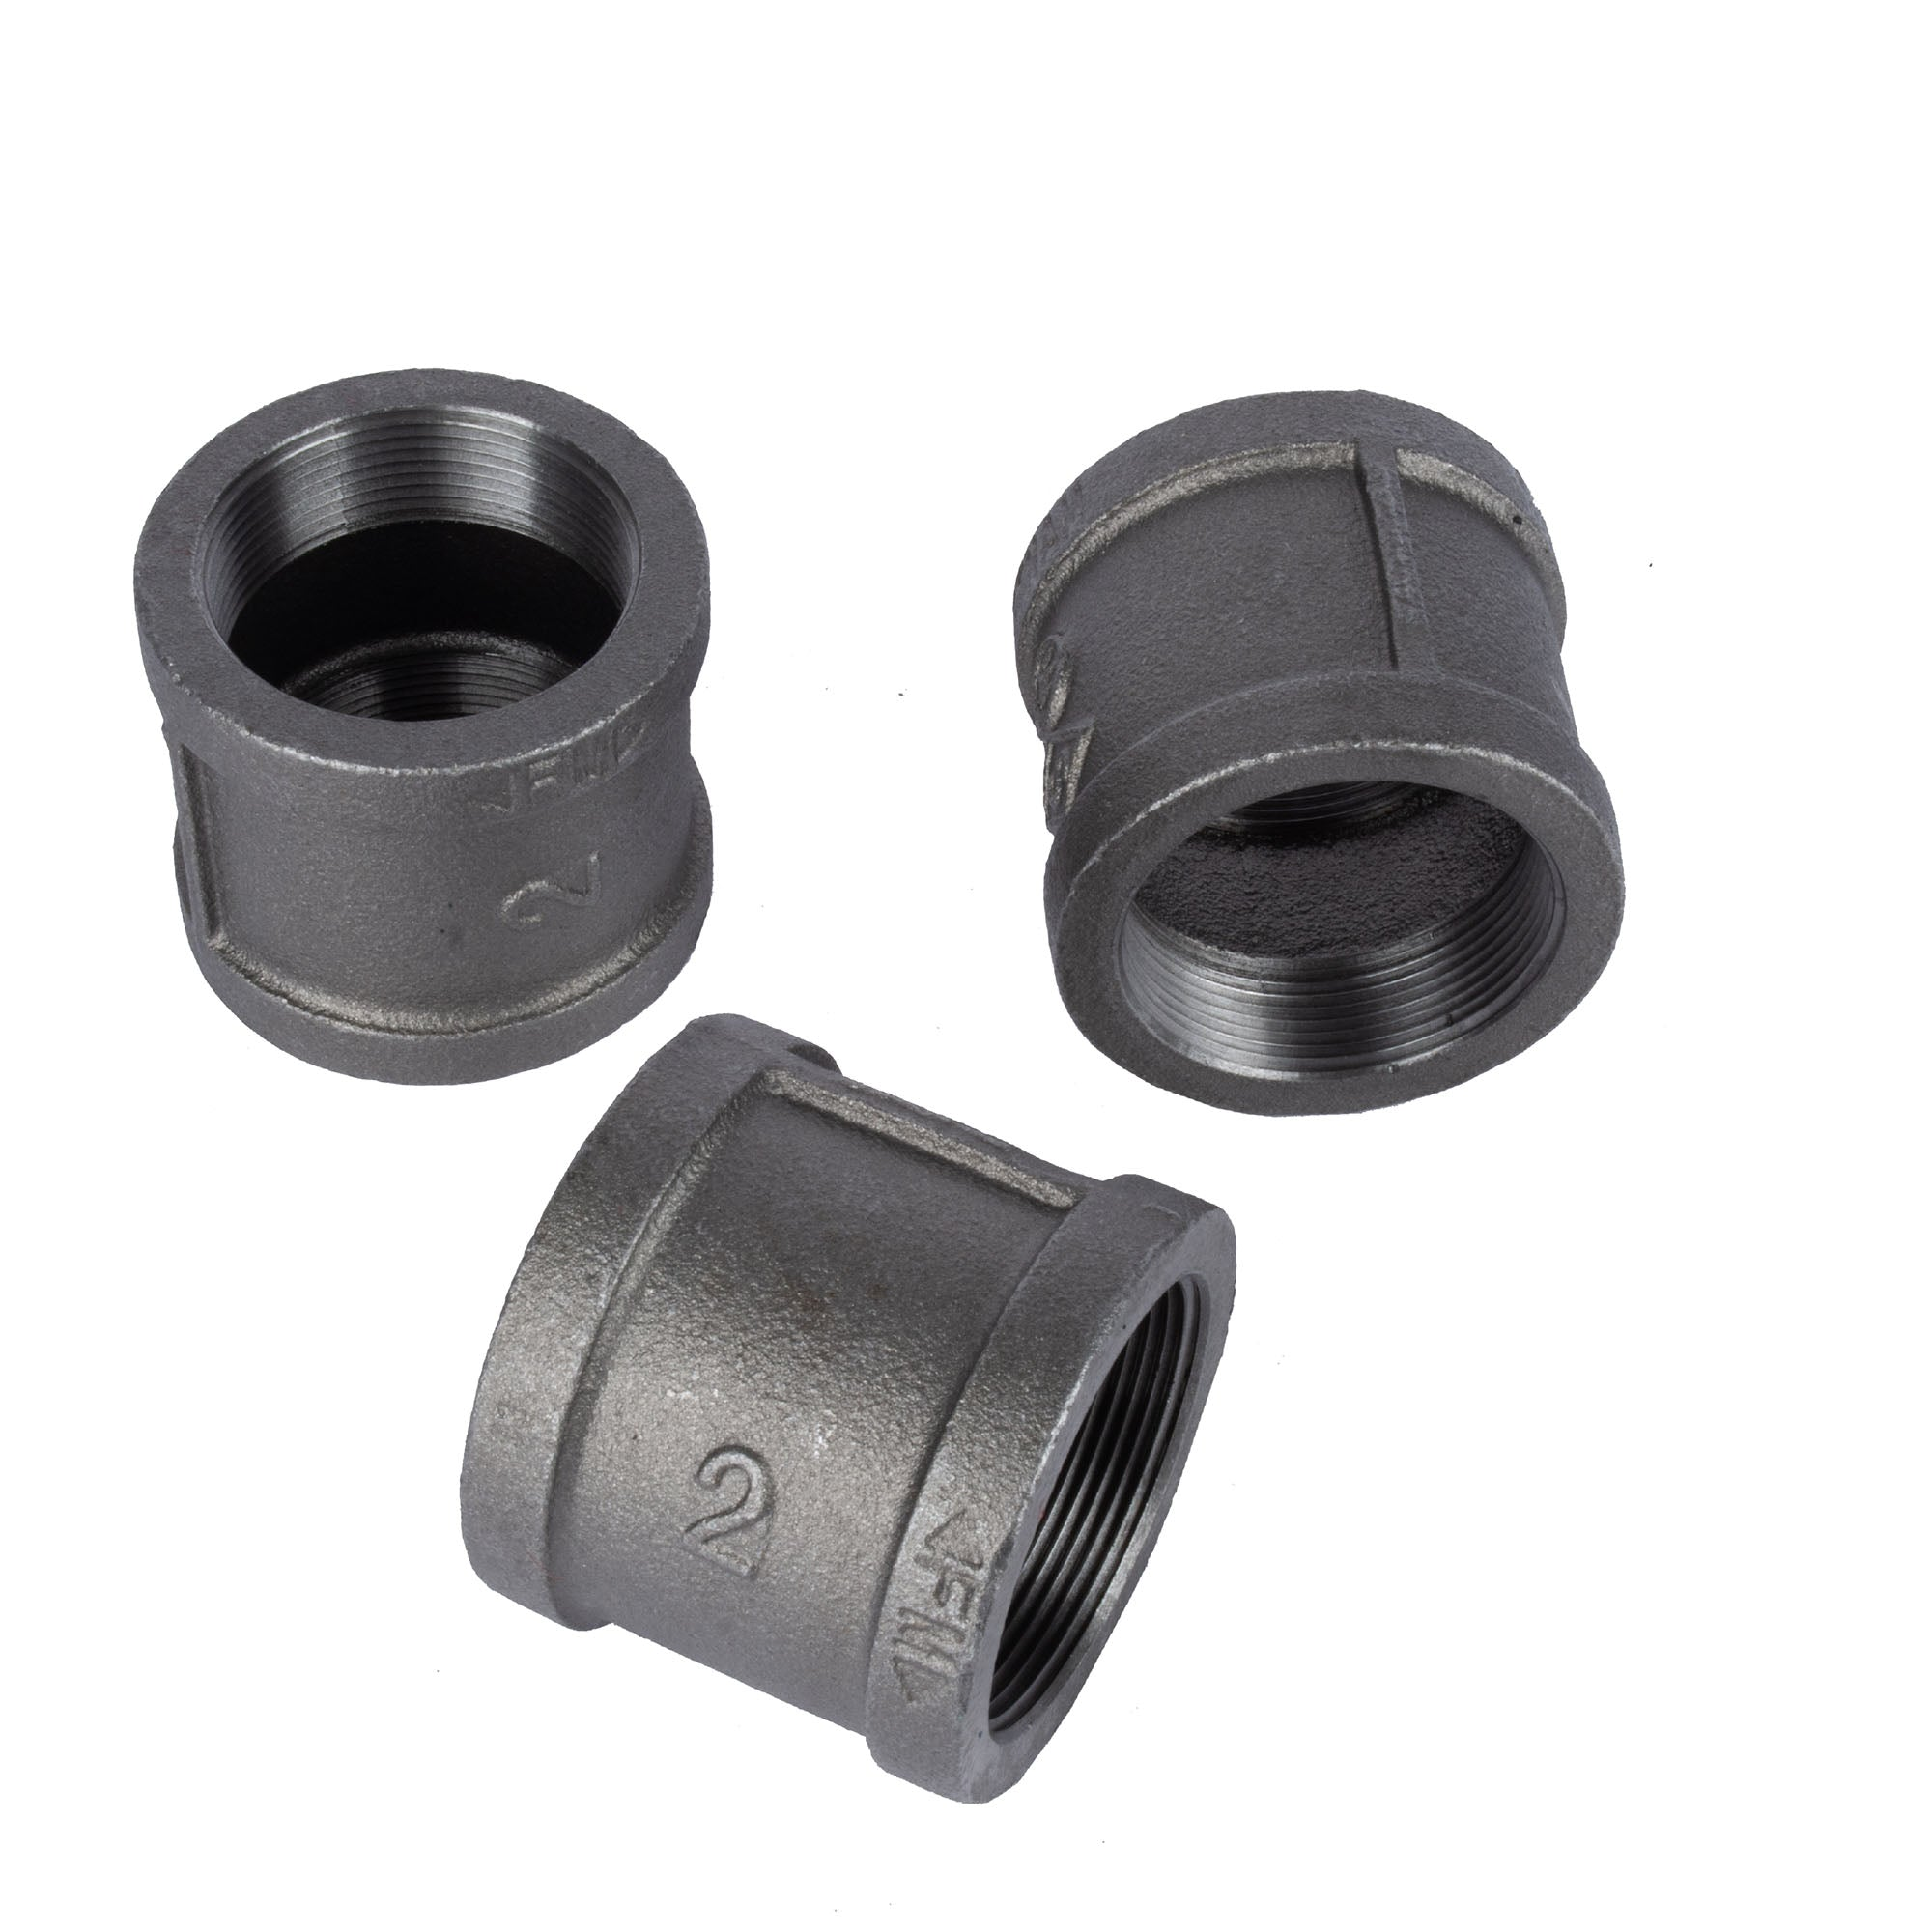 2 In Black Coupling - Pipe Decor